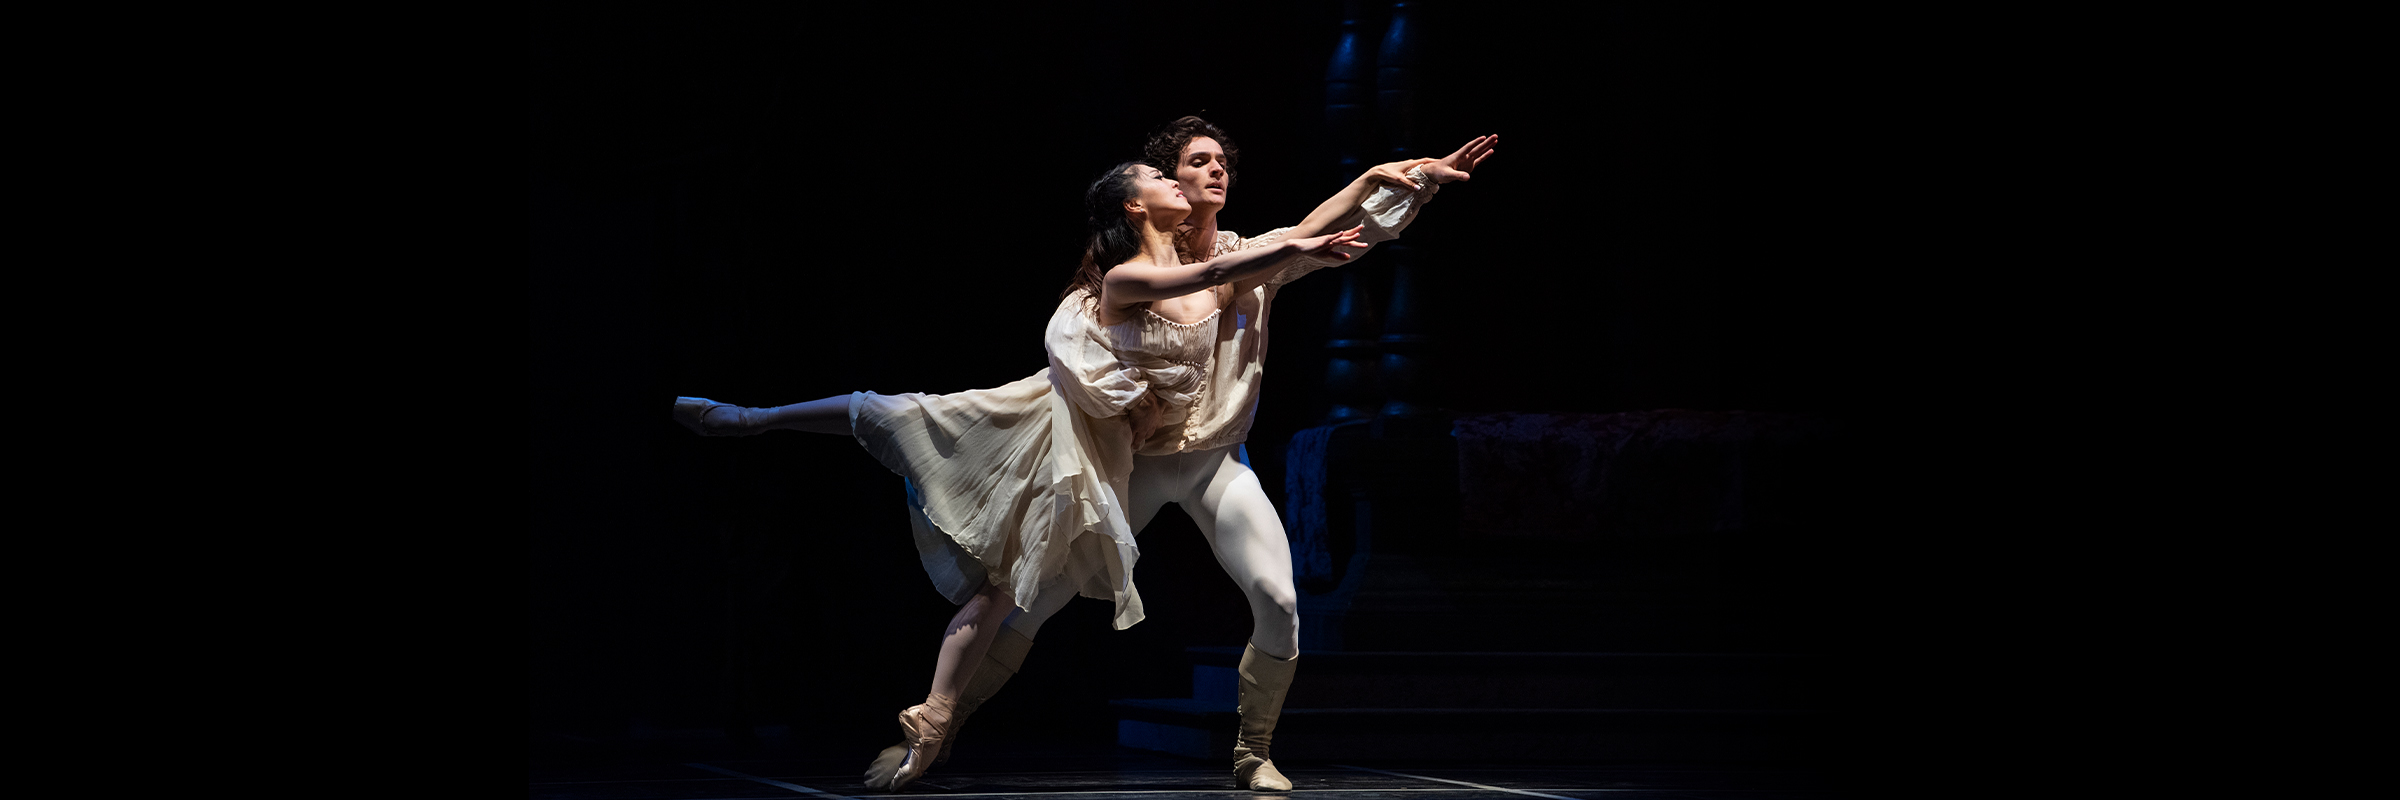 Misa Kuranaga and Angelo Greco in Tomasson's Romeo & Juliet // © Erik Tomasson